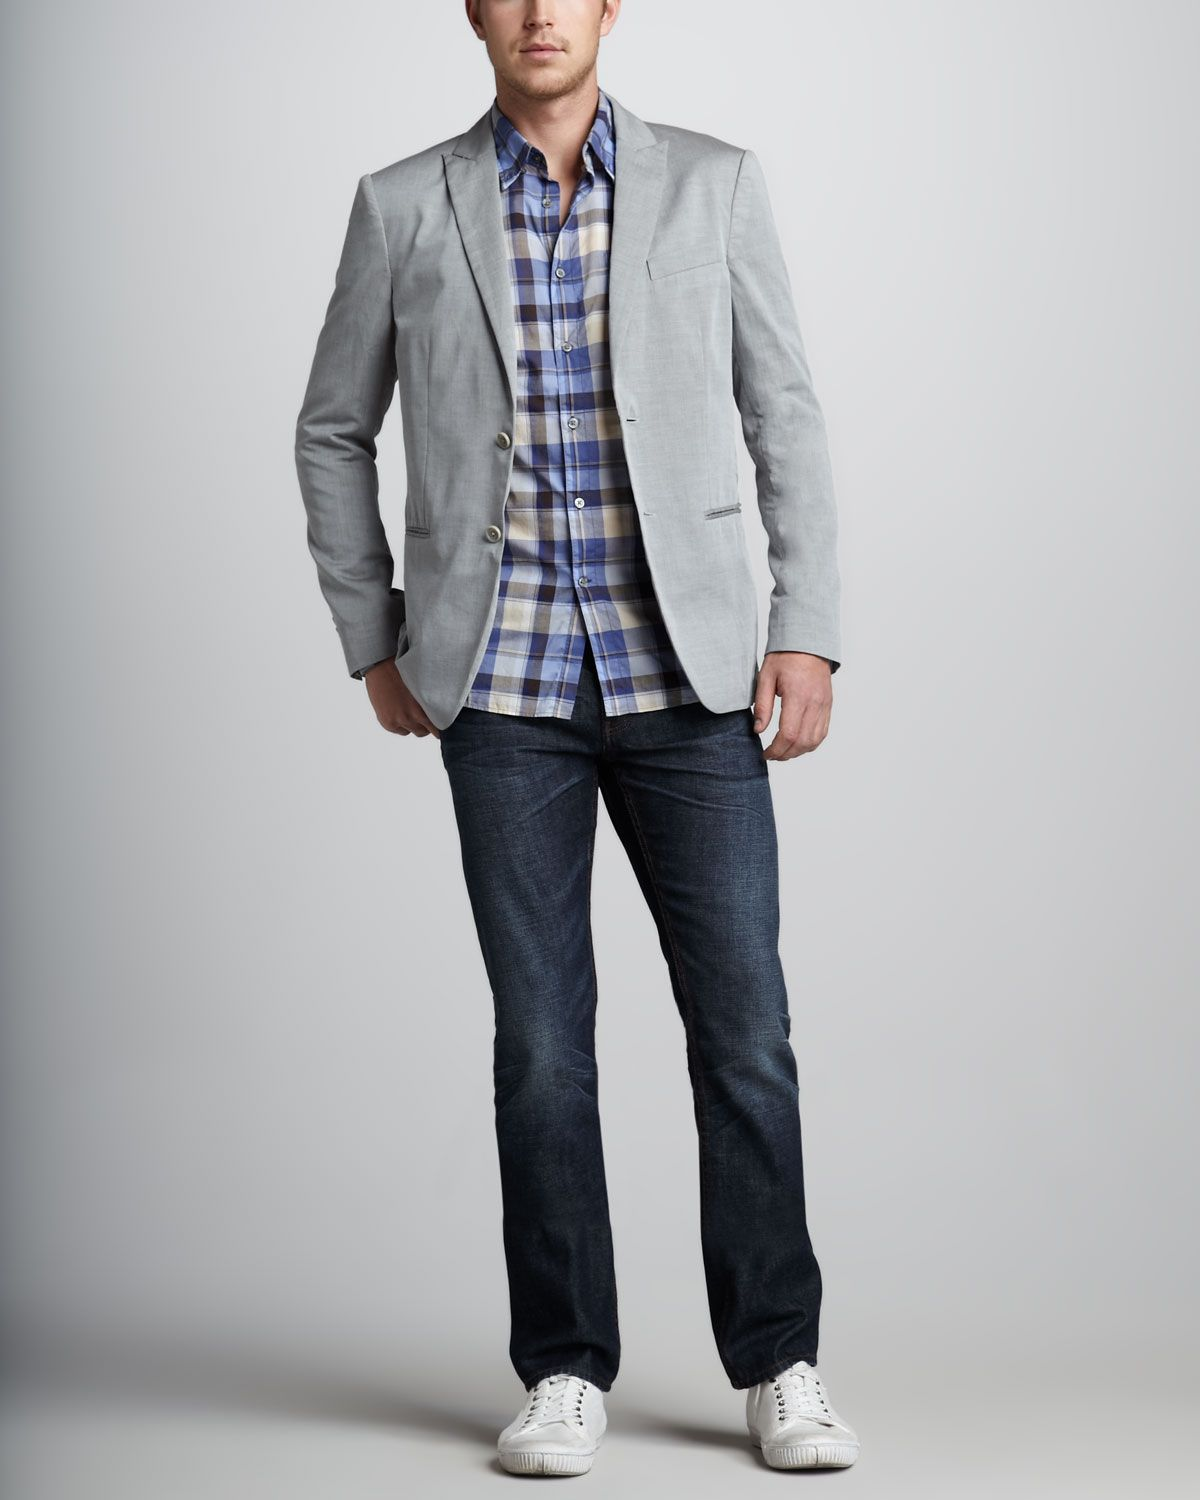 dark grey button down shirt - Google Search | Style | Pinterest ...